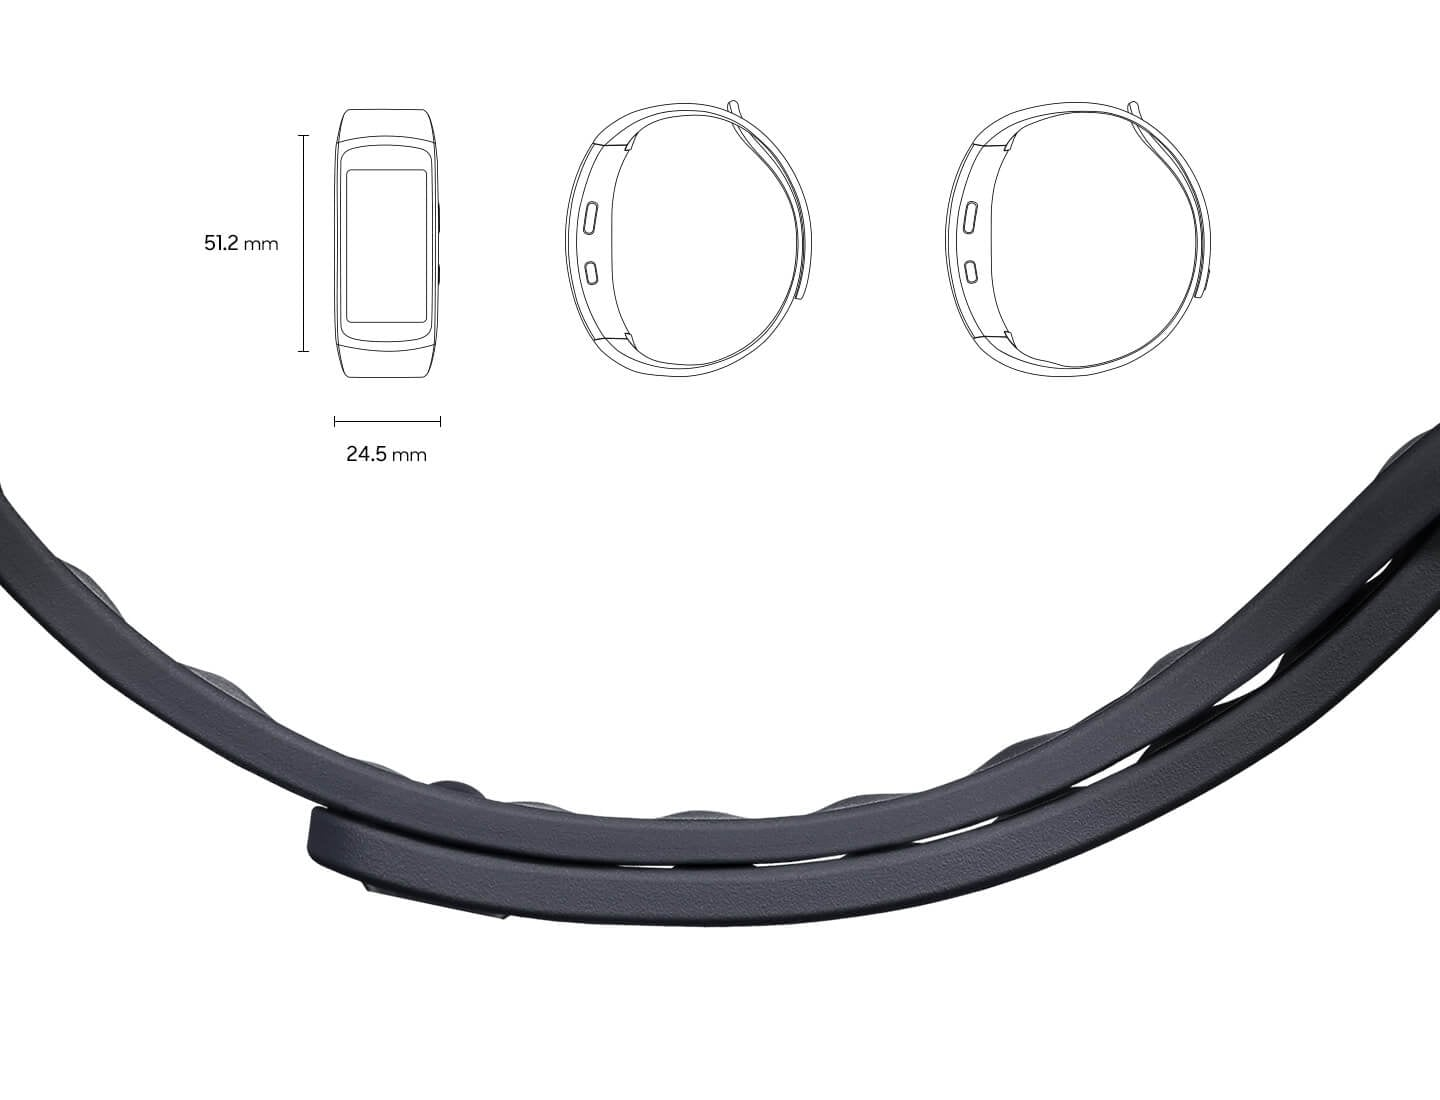 Gear fit2 of size 51.2mm by 24.5mm seen from the front and from the side in small size and large size along with a closeup of the band